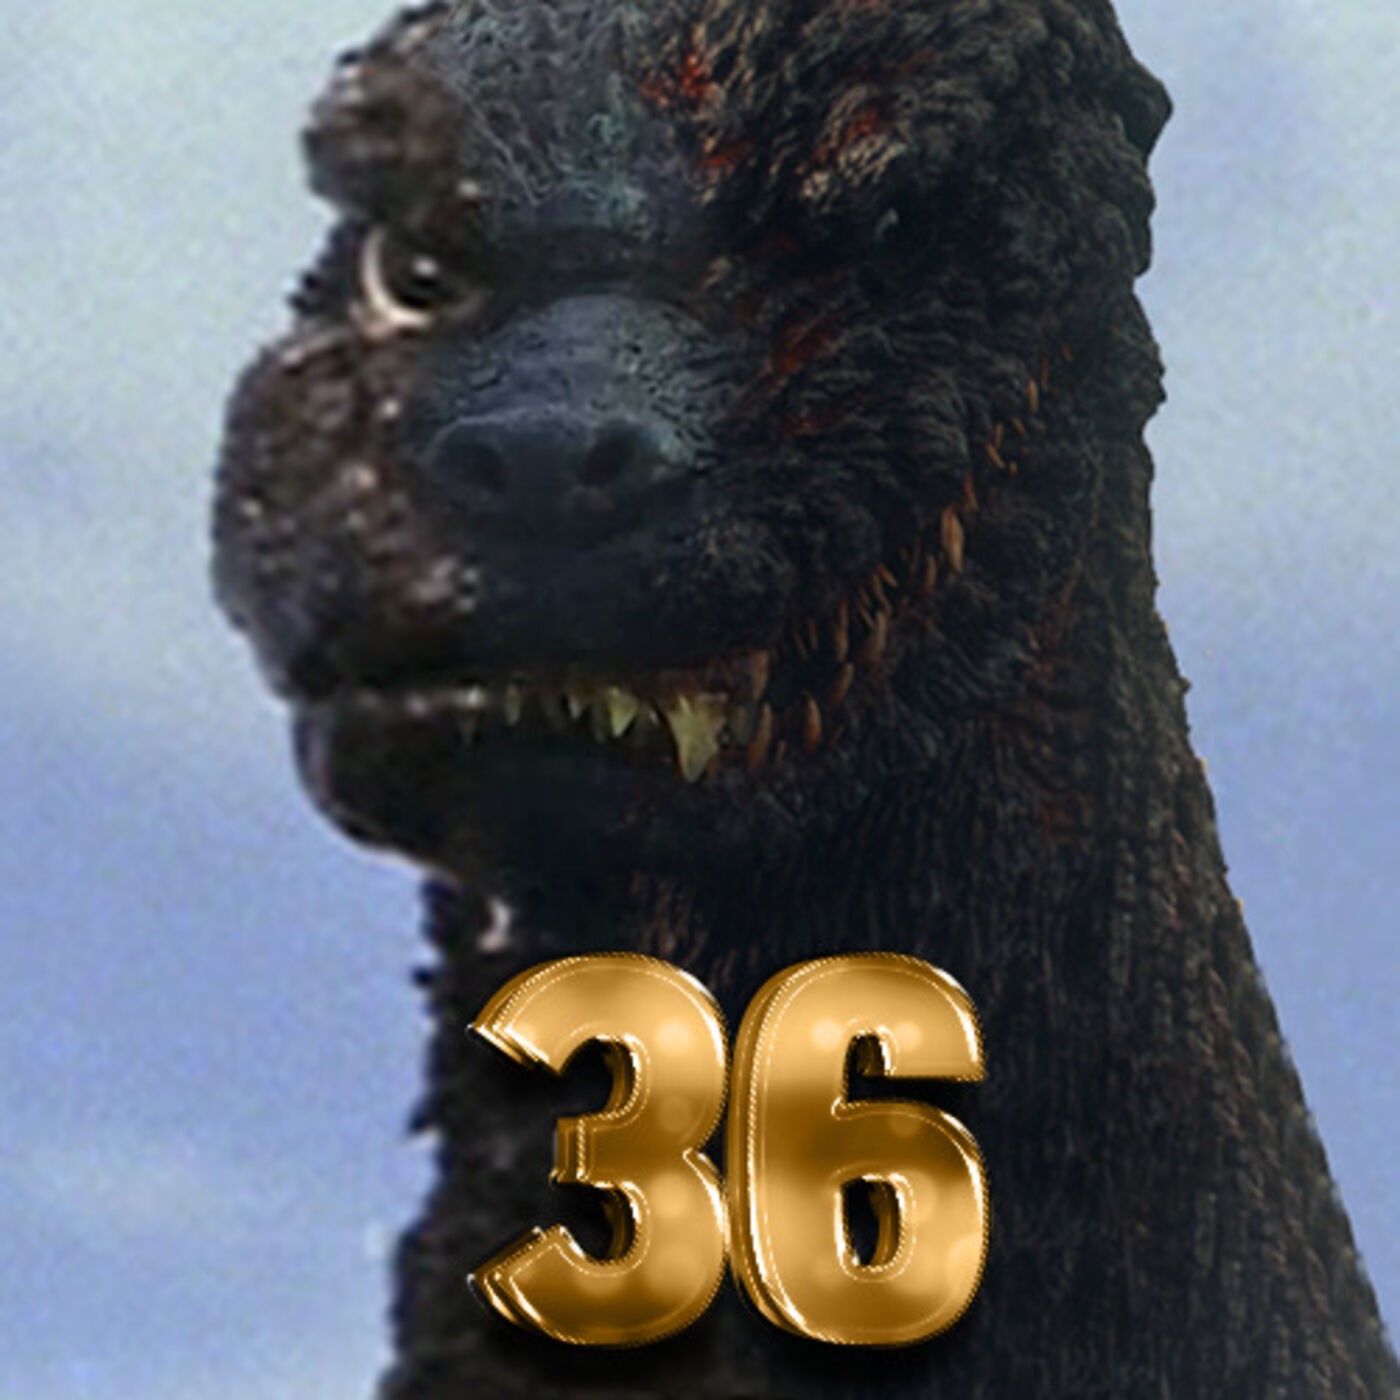 Ep 36 - An Unstoppable Force of Nature (Godzilla's Character)